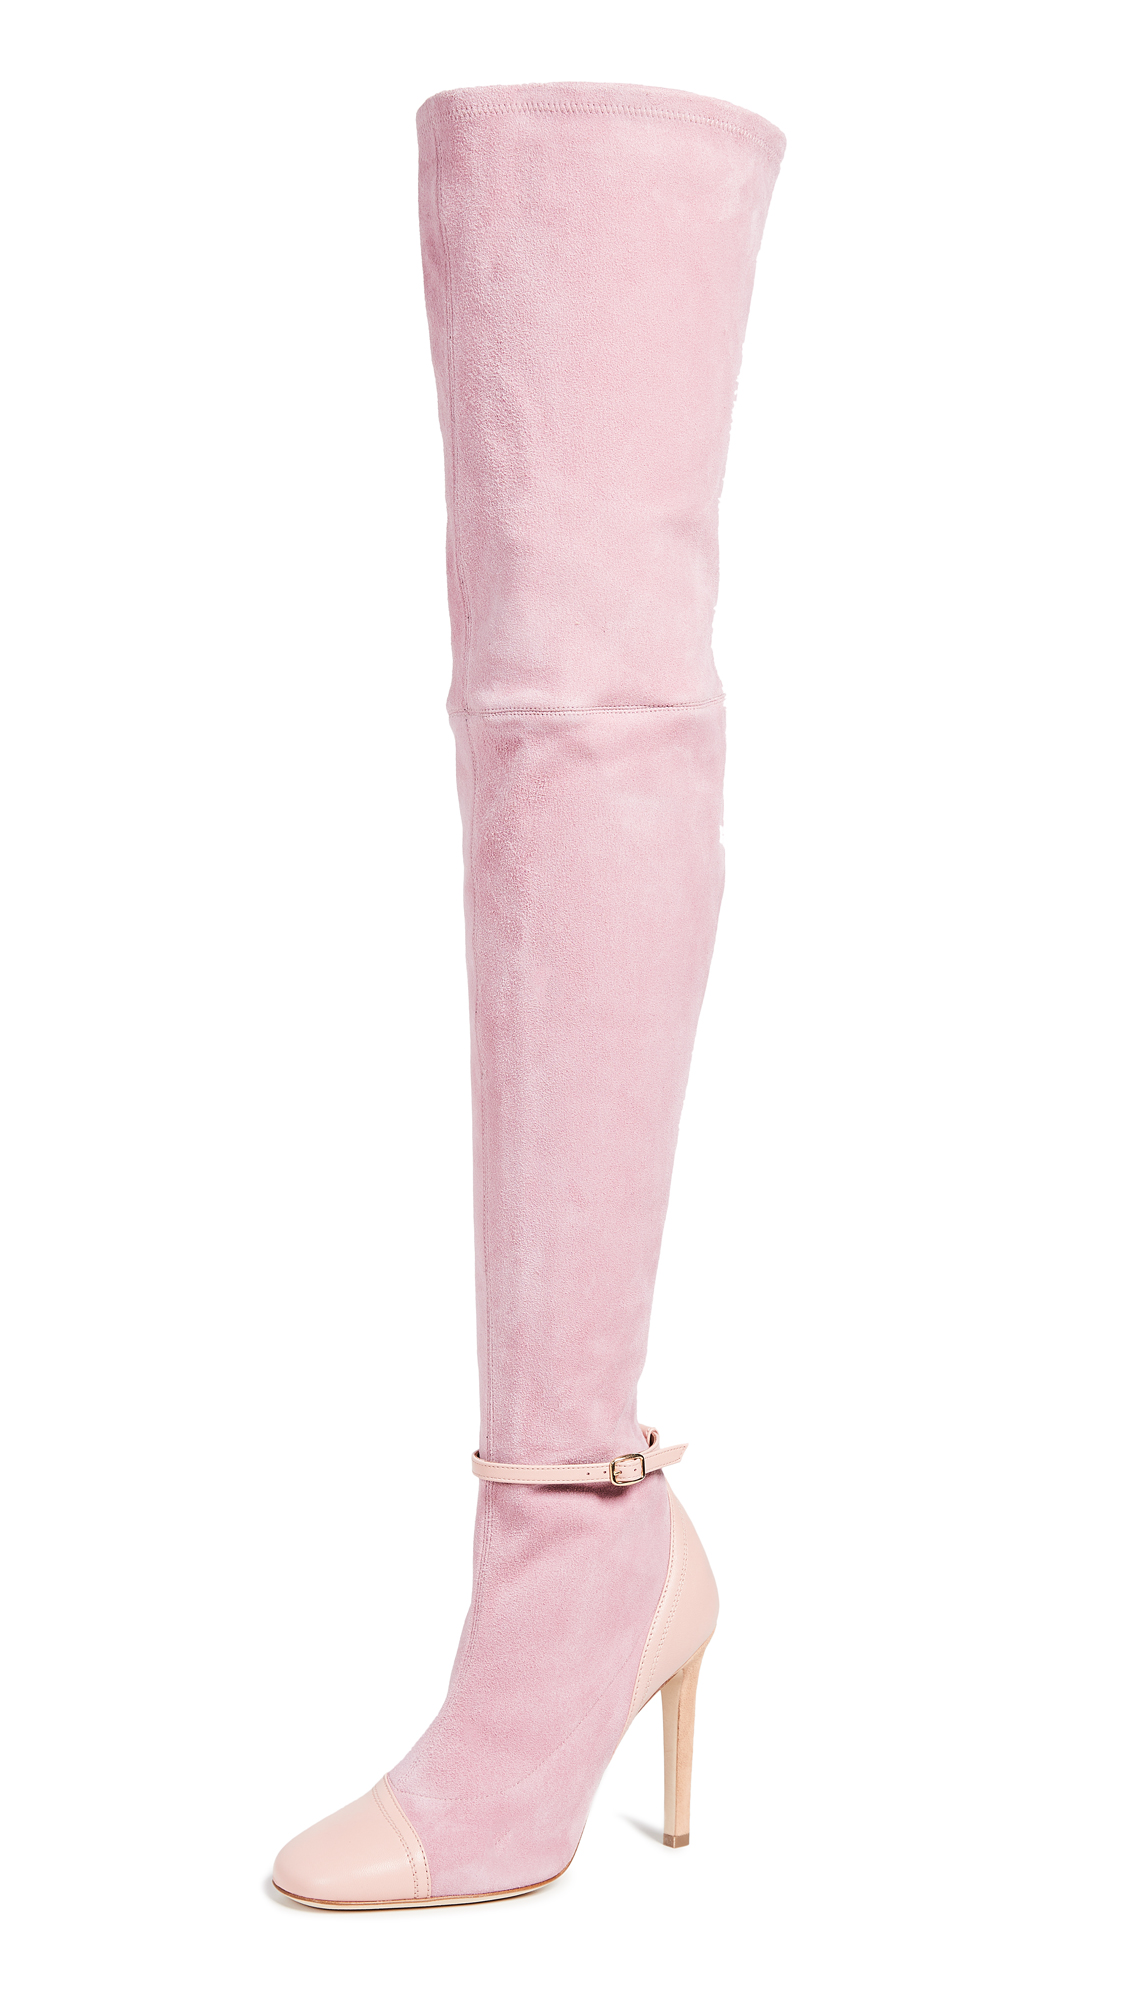 Malone Souliers Ronya Over the Knee Roksanda Boots - Pink/Dust Pink